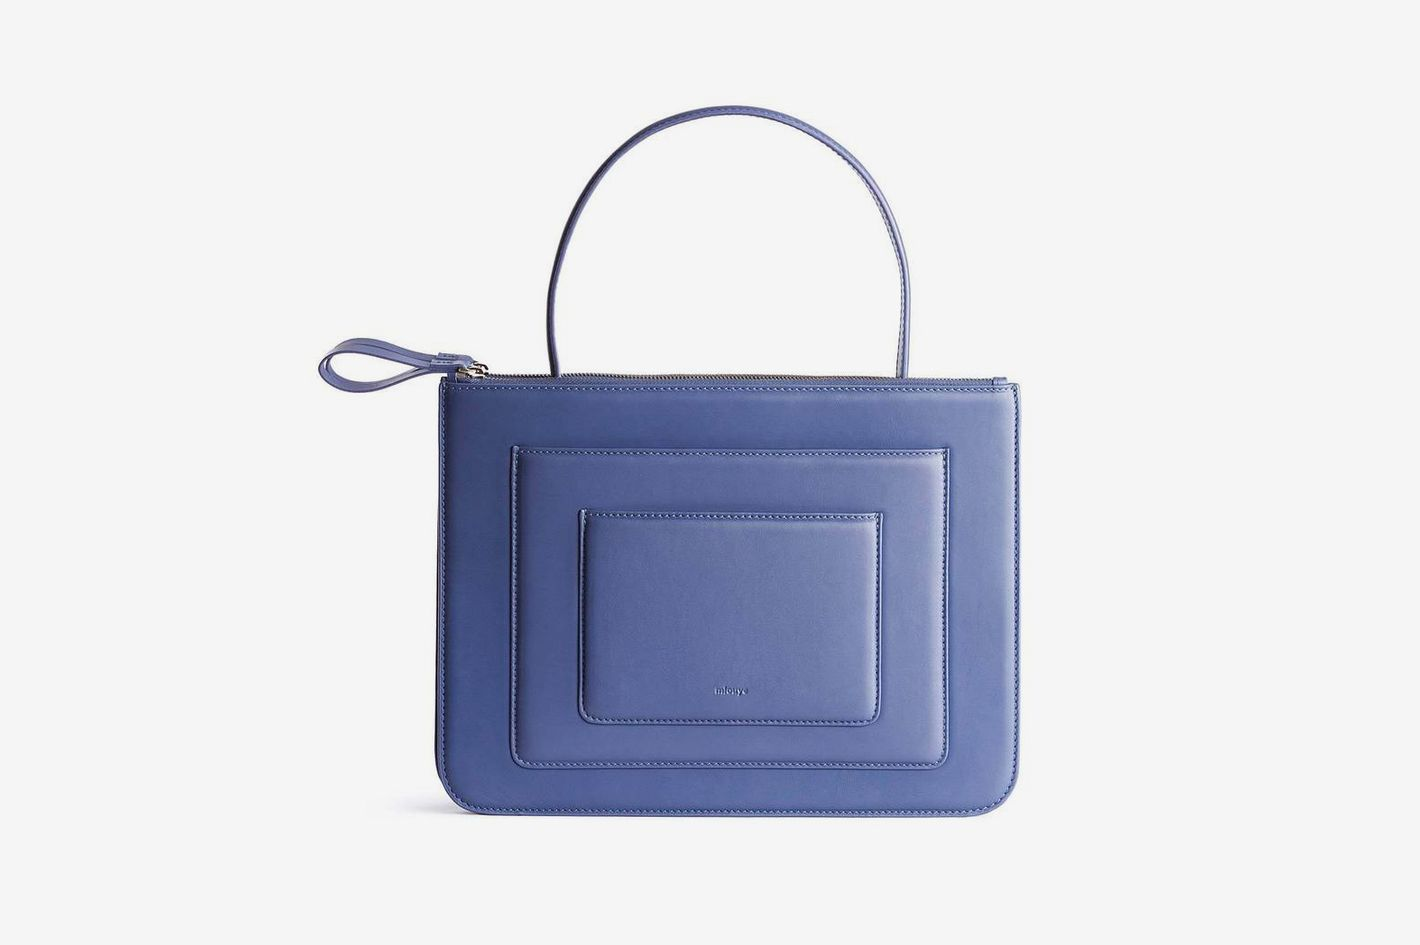 The Business Bag